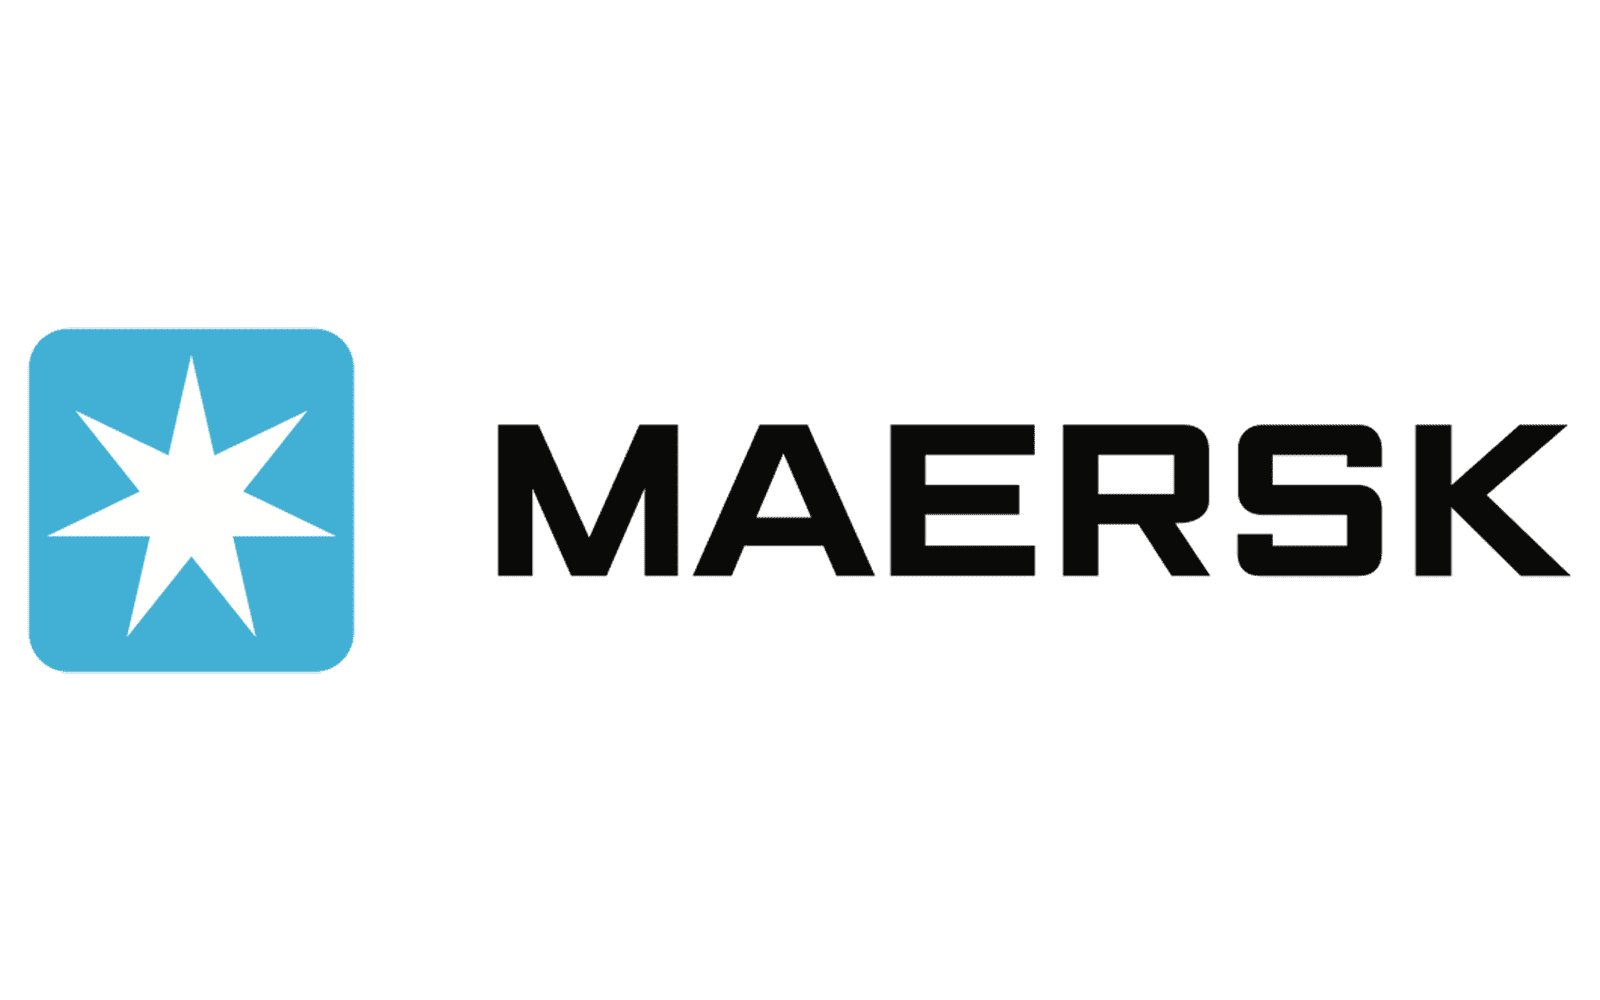 Maersk logo and symbol, meaning, history, PNG